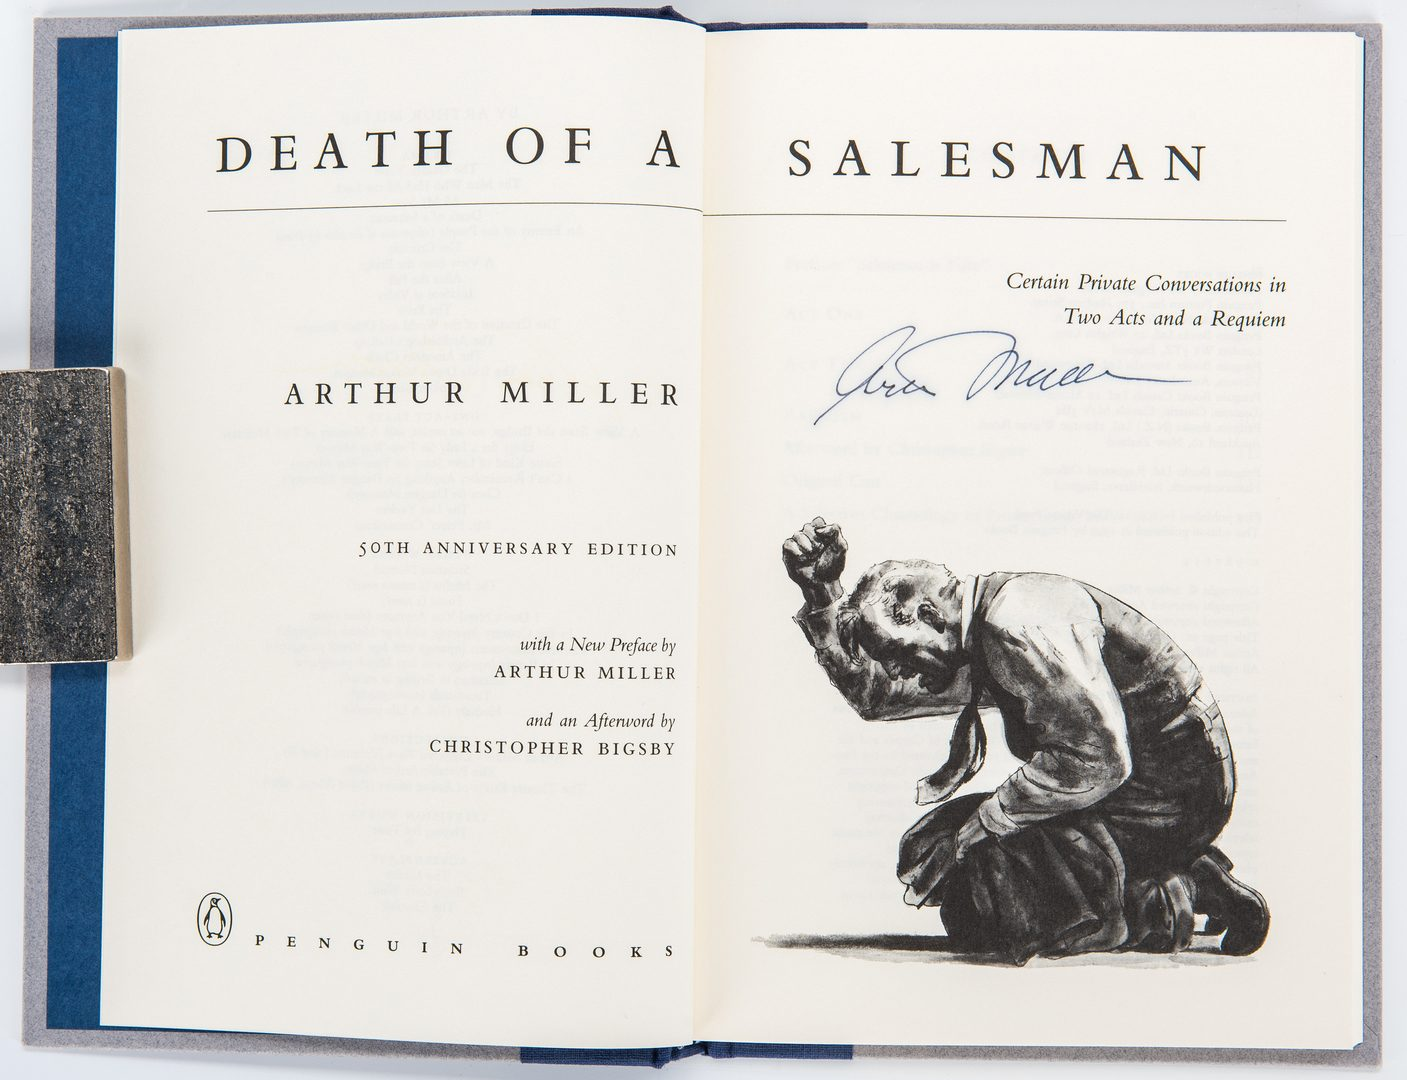 Lot 293: 7 Signed Misc. Books, incl. Salk, Miller, Gore